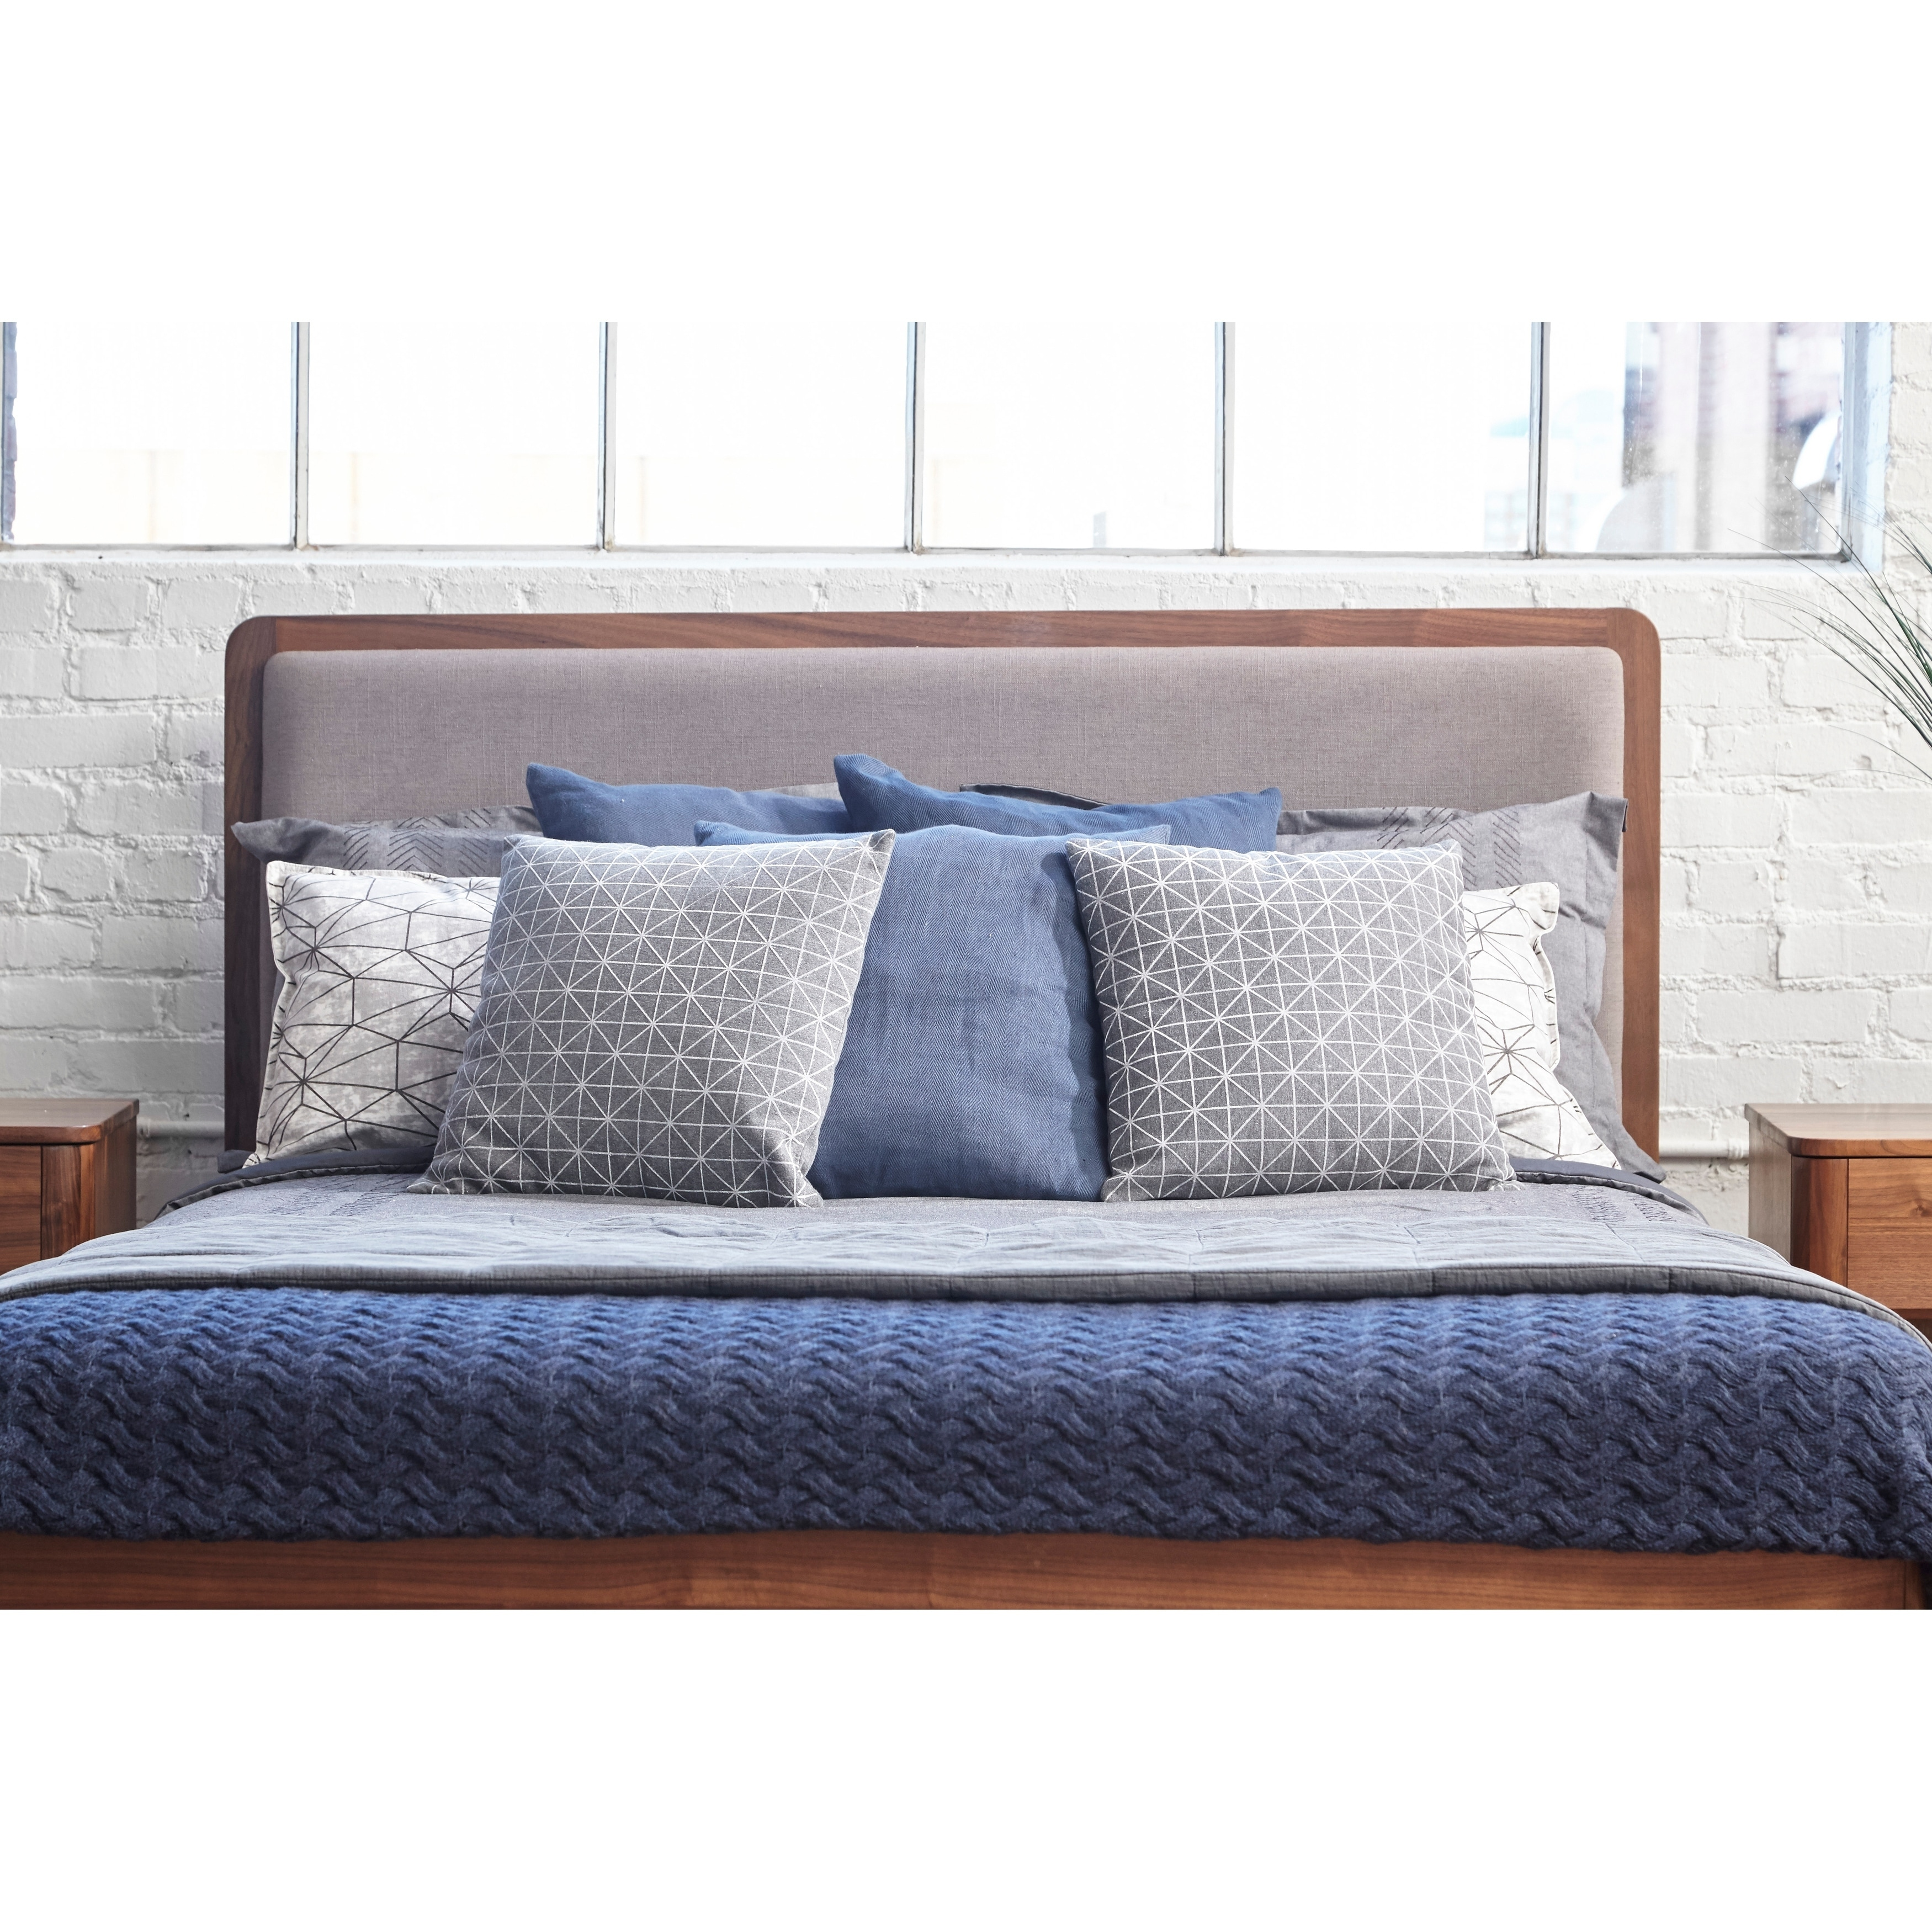 65ab0126183bb Shop Kirkwood American Walnut Mid Century Modern Queen Platform Bed - On  Sale - Free Shipping Today - Overstock - 25443862